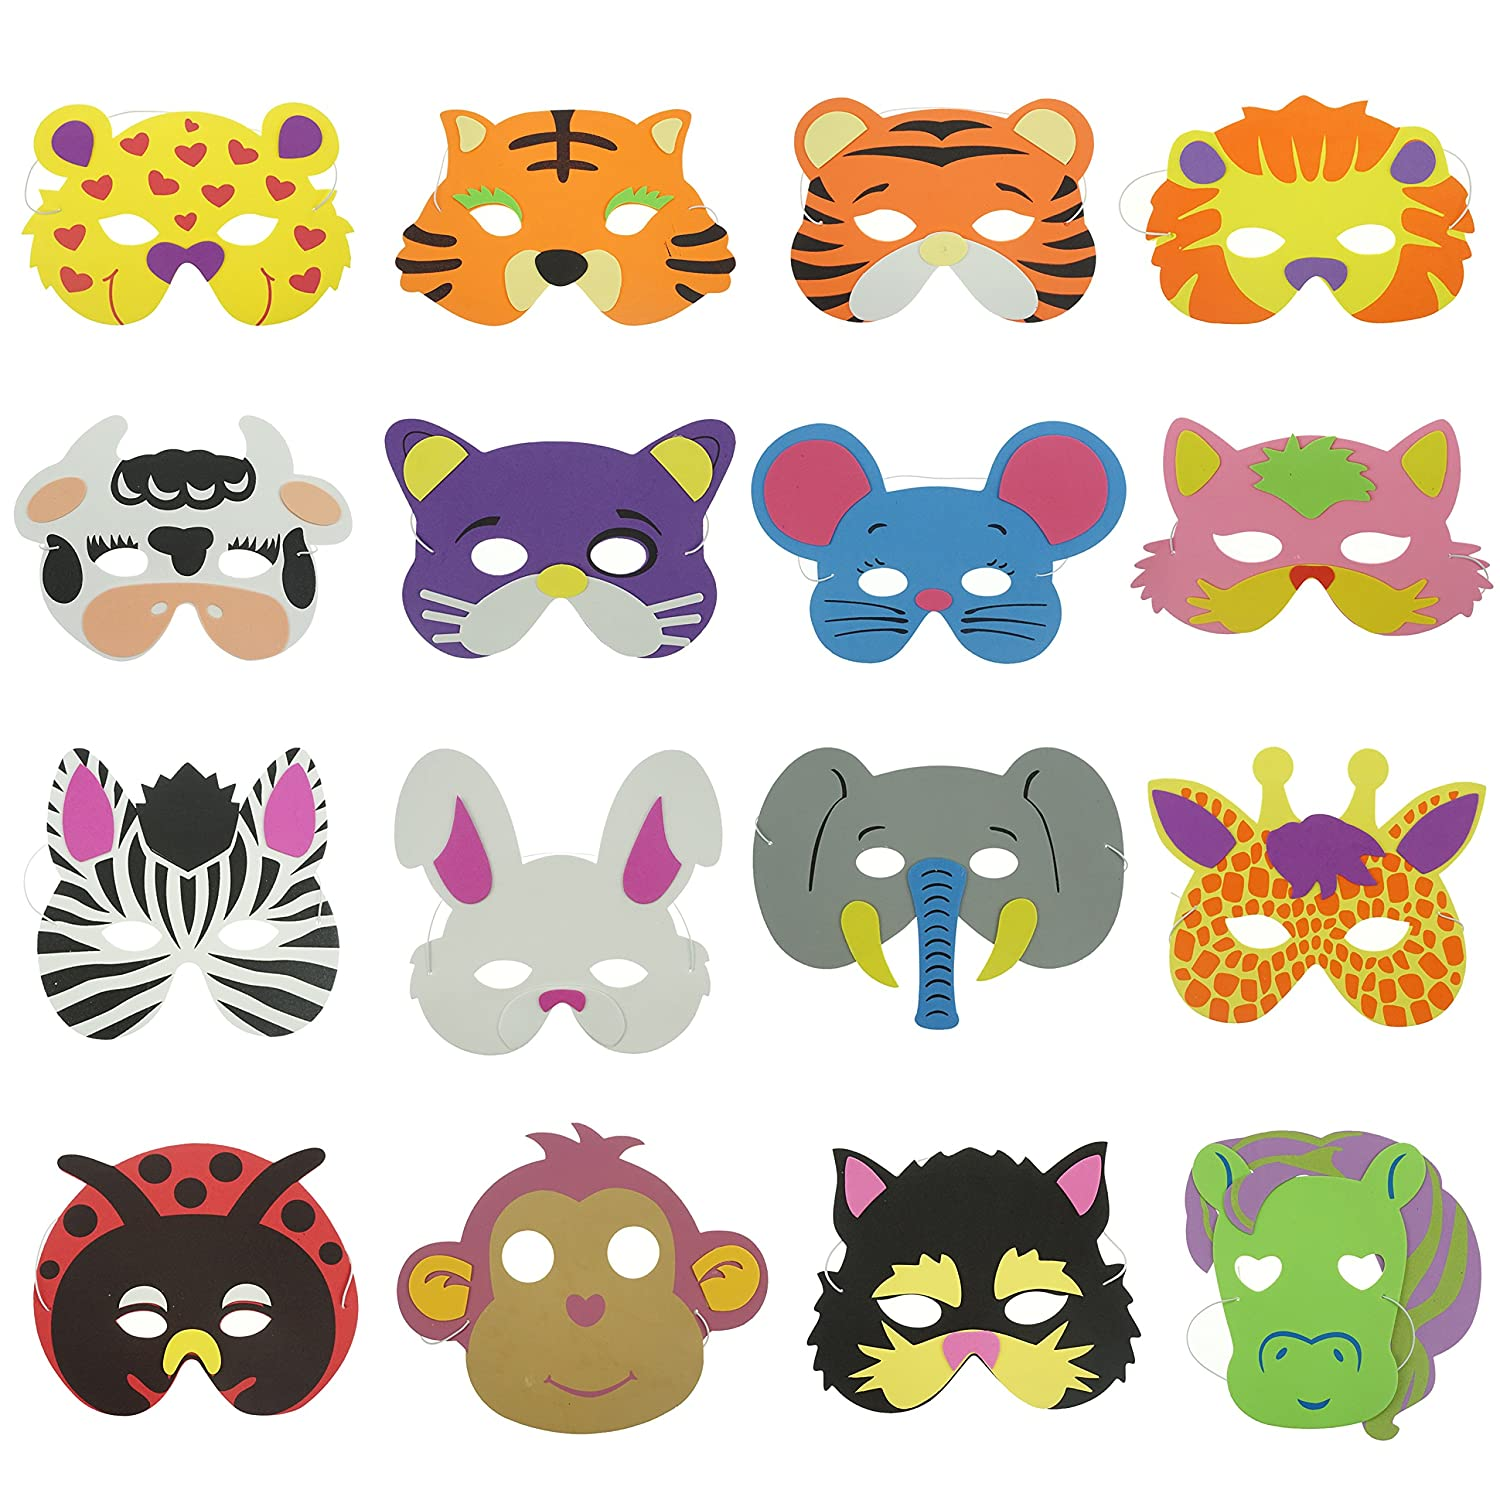 Bilipala 16 Counts Cute Cartoon Zoo Animal Face Masks for Kids Dress Up Costume